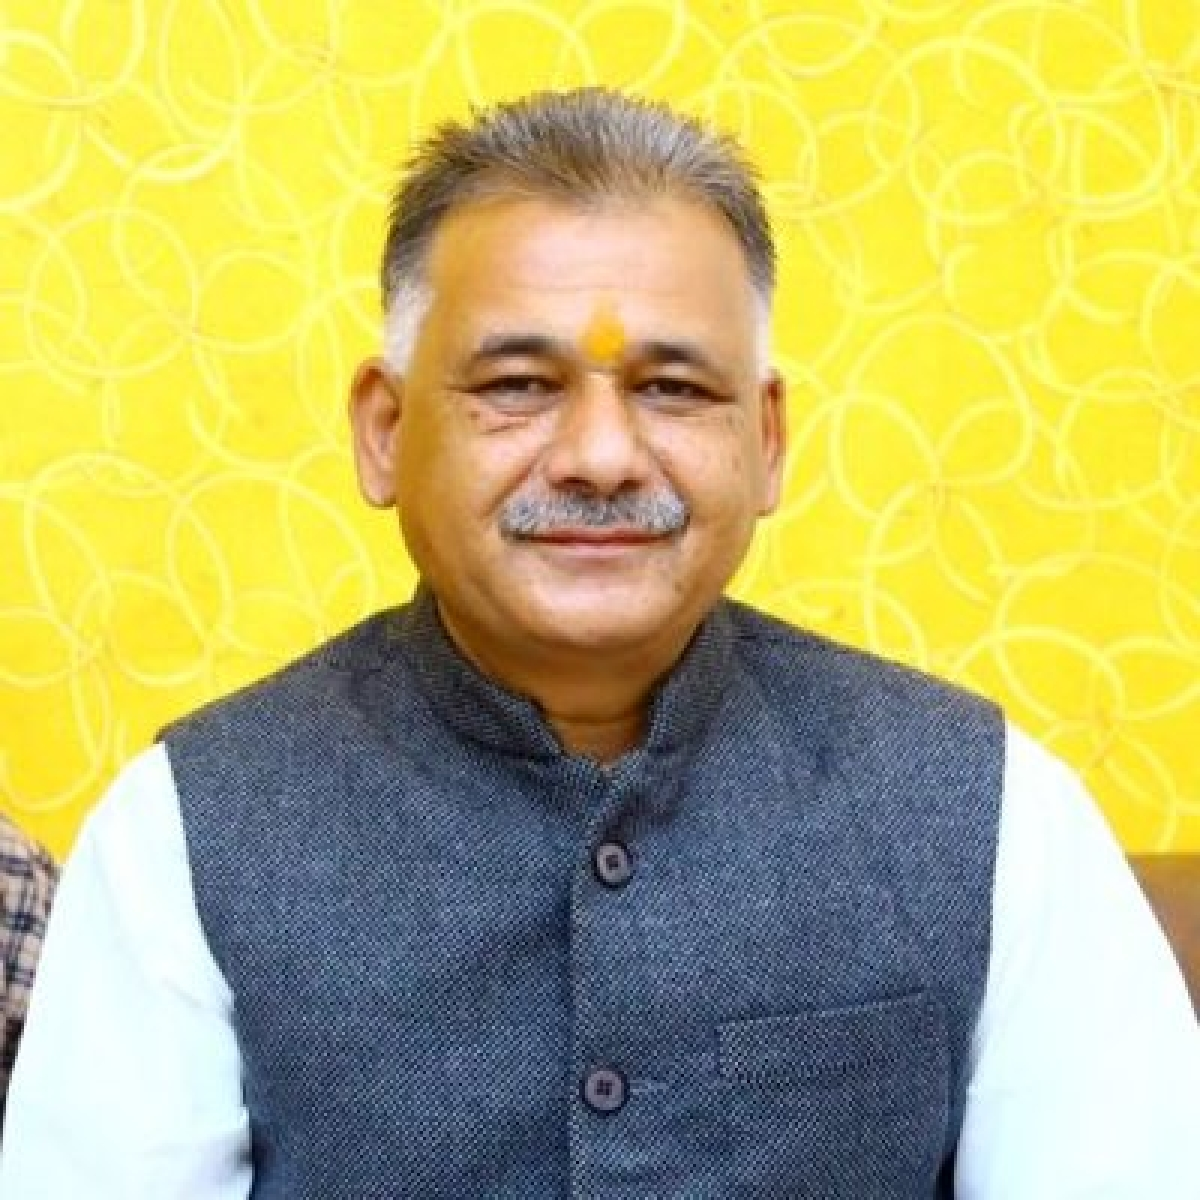 Minister for school education Inder Singh Parmar